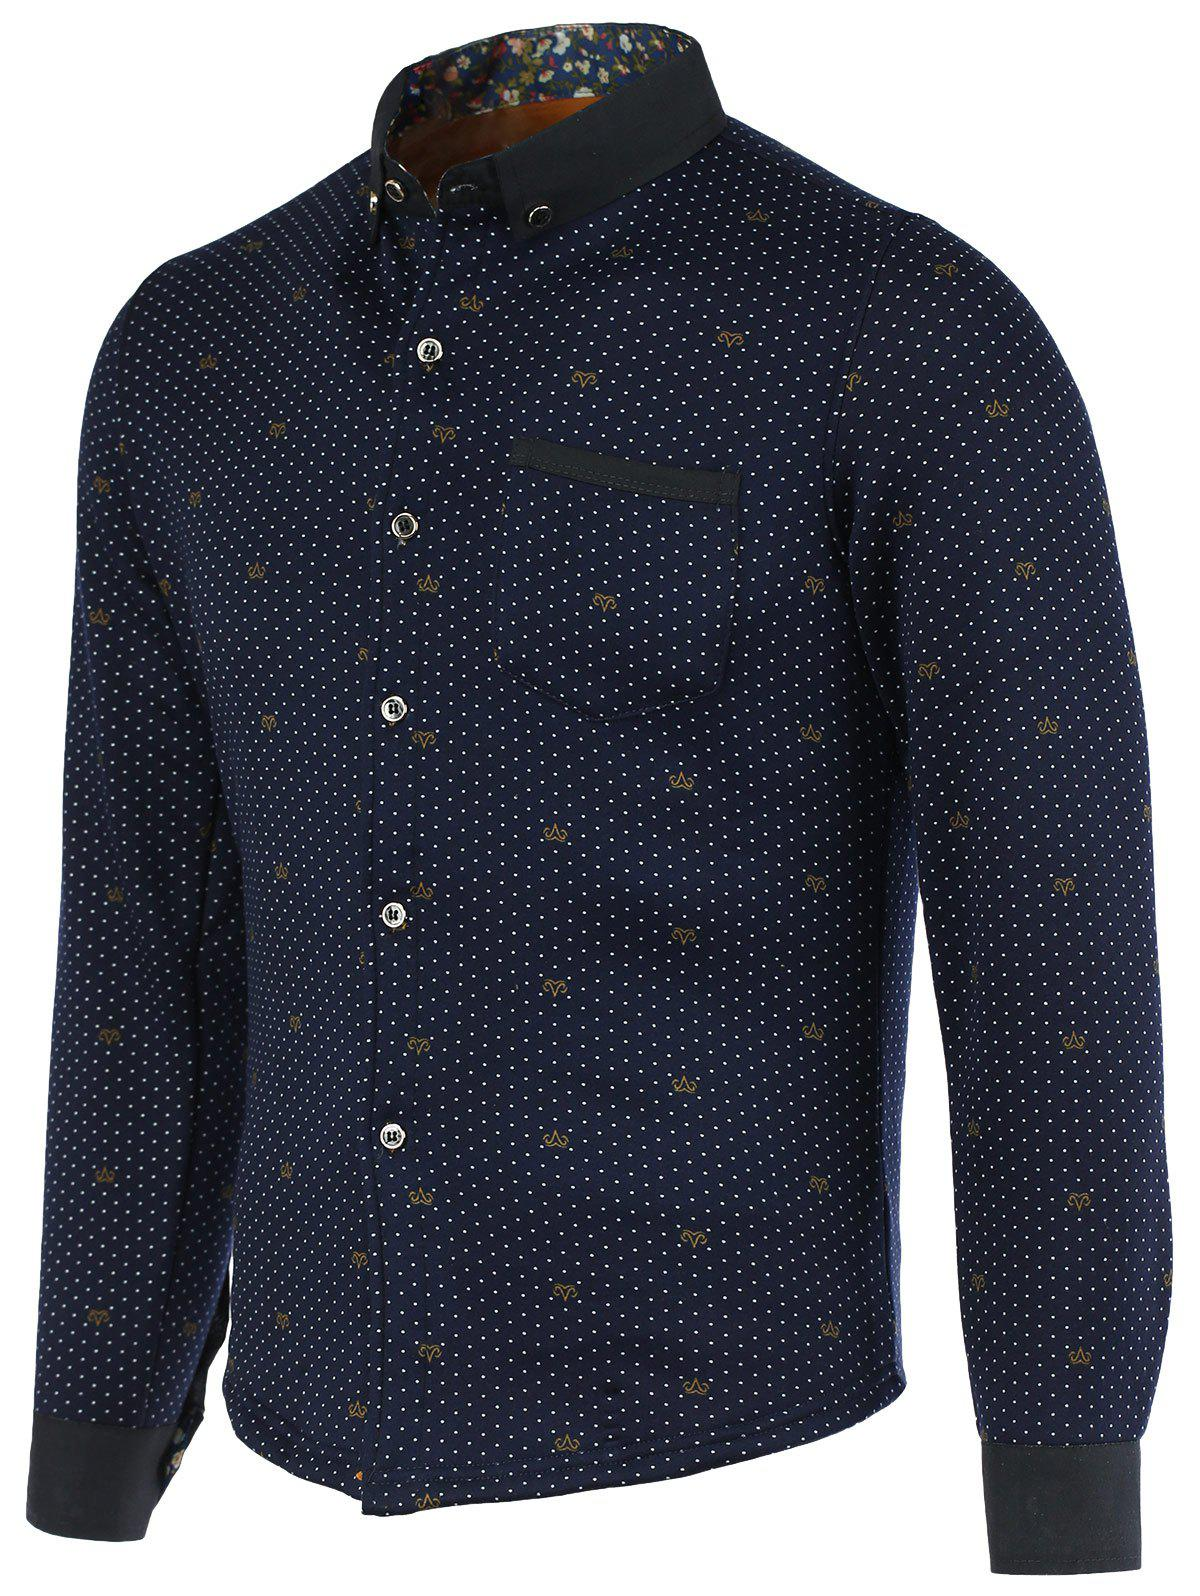 Polka Dot Fleece Turn-Down Collar Long Sleeve Button-Down Men's Shirt - PURPLISH BLUE 3XL